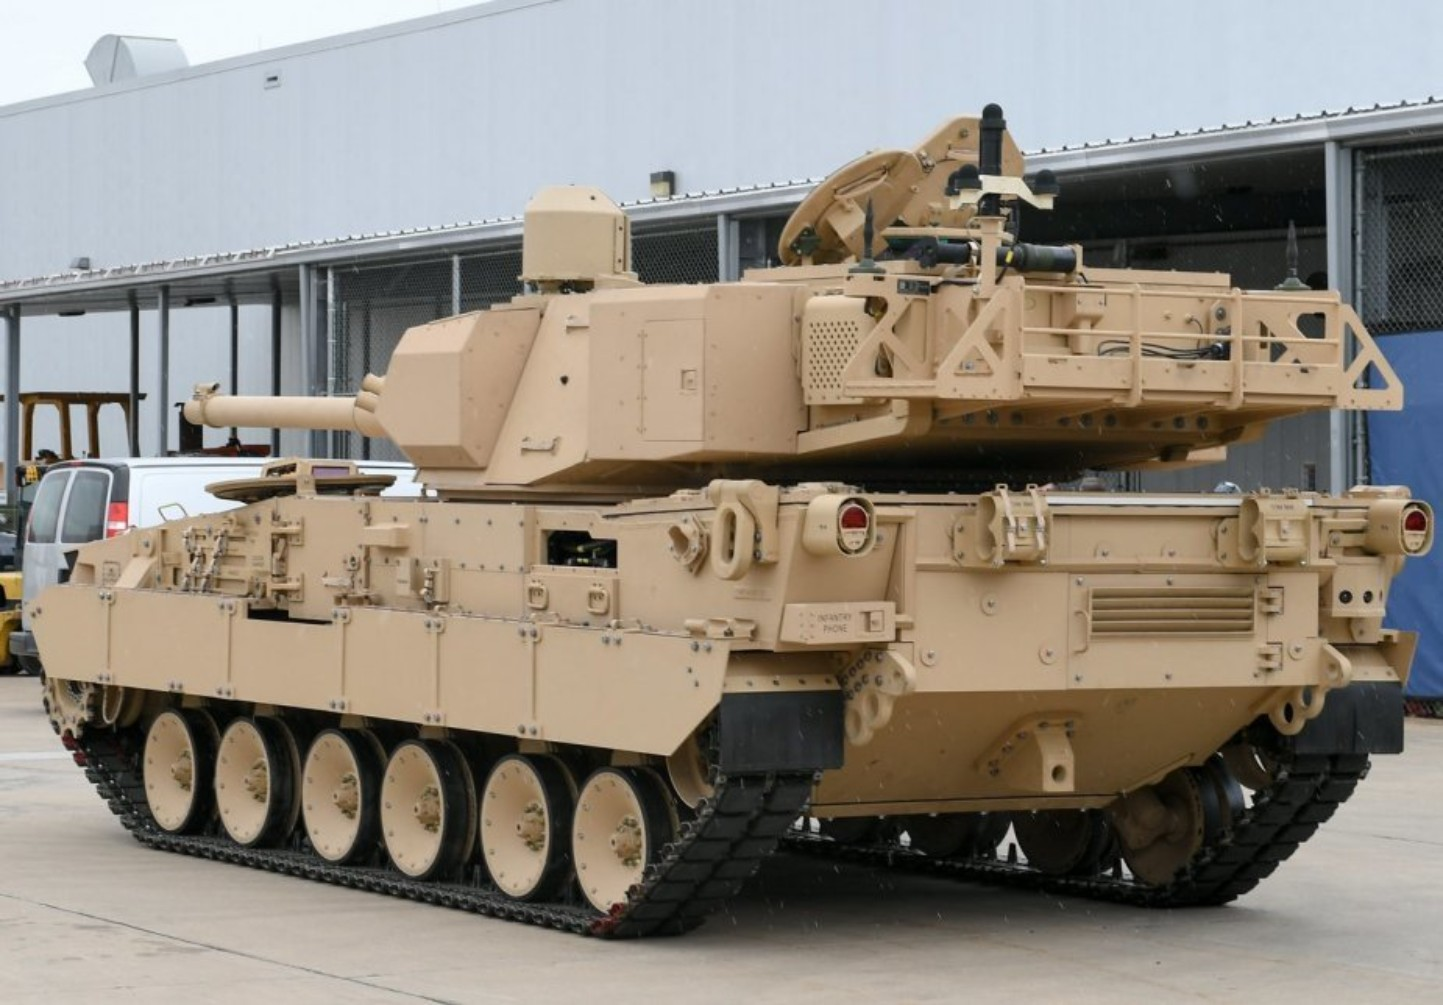 2021-02-14 13:34:42 | U.S. Army releases new 'market survey' in anticipation of light tank production